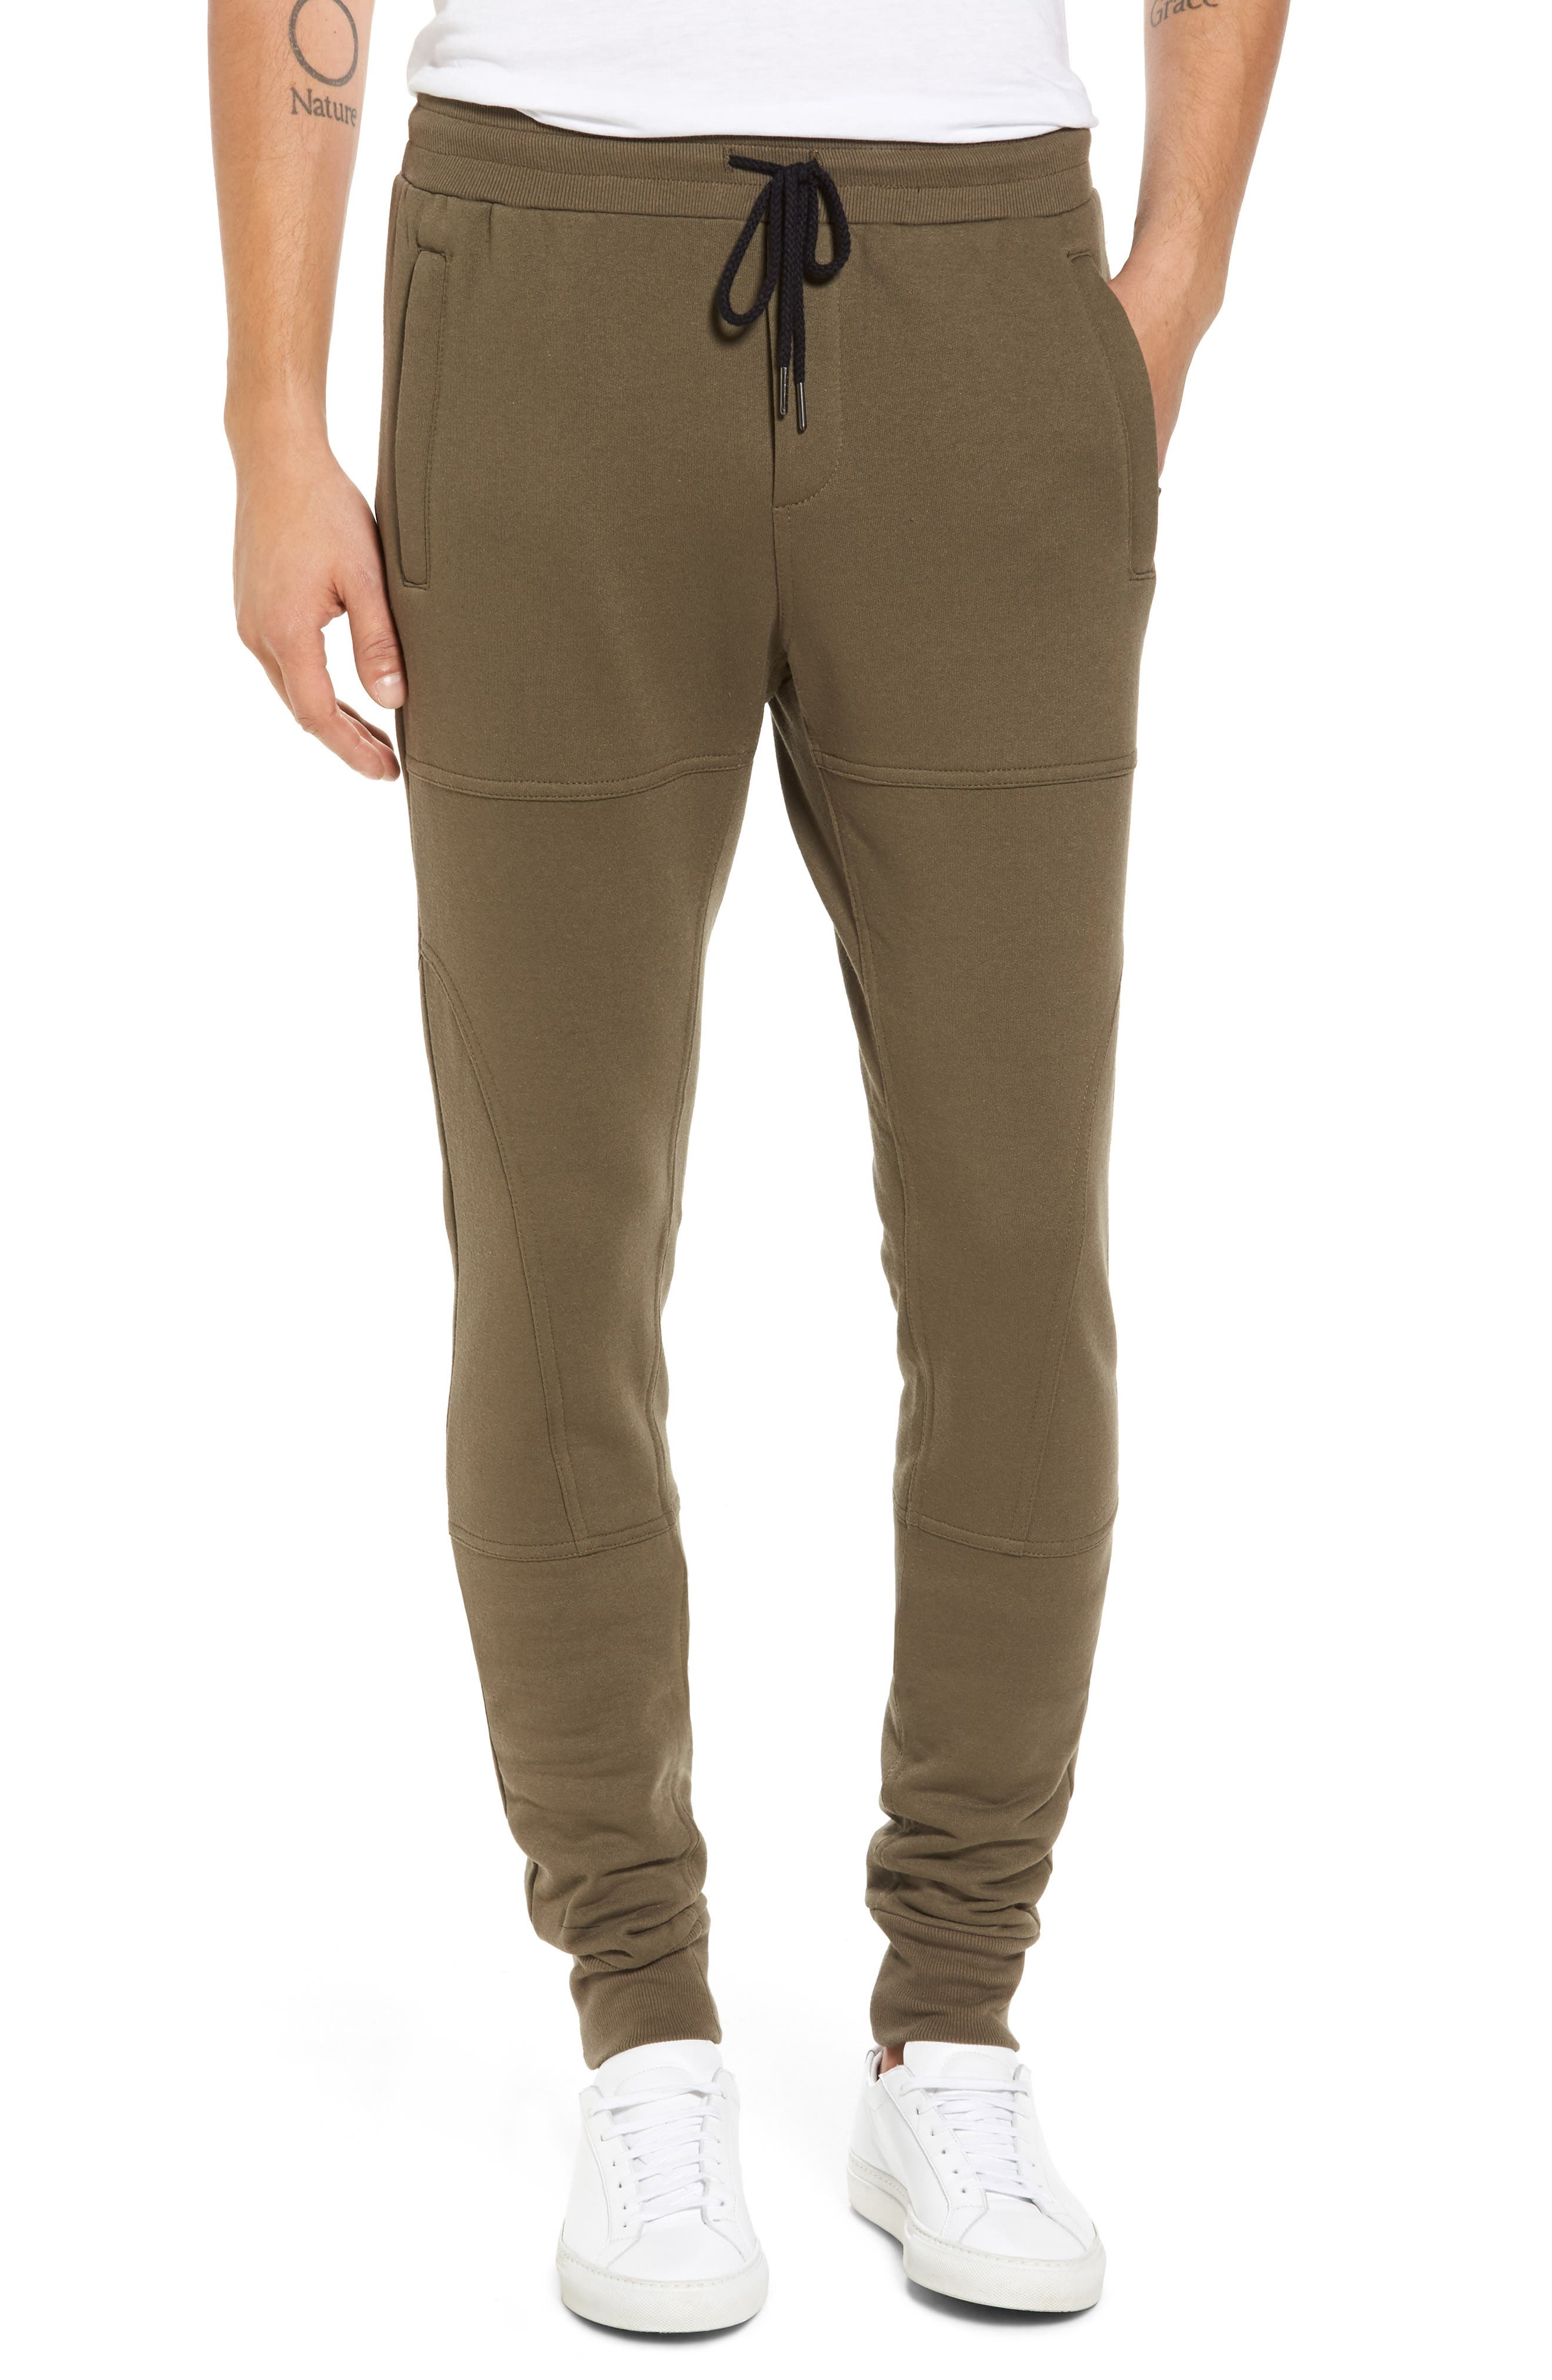 French Terry Sweatpants,                             Main thumbnail 1, color,                             Army